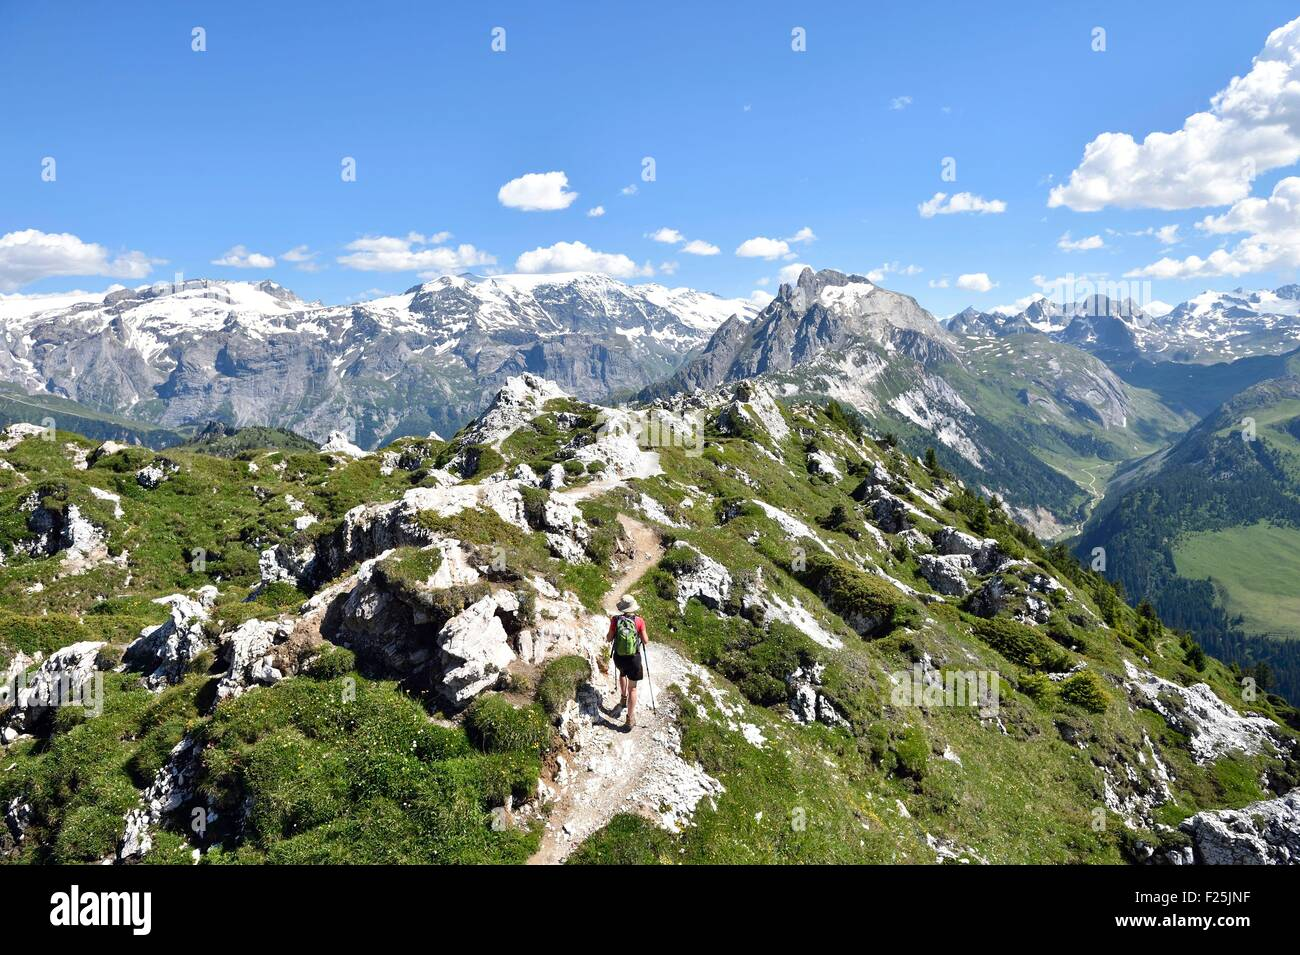 France, Savoie, Vanoise massif, Tarentaise valley, Courchevel, hiking on the Dent Du Villard (2284 m) and peak of - Stock Image